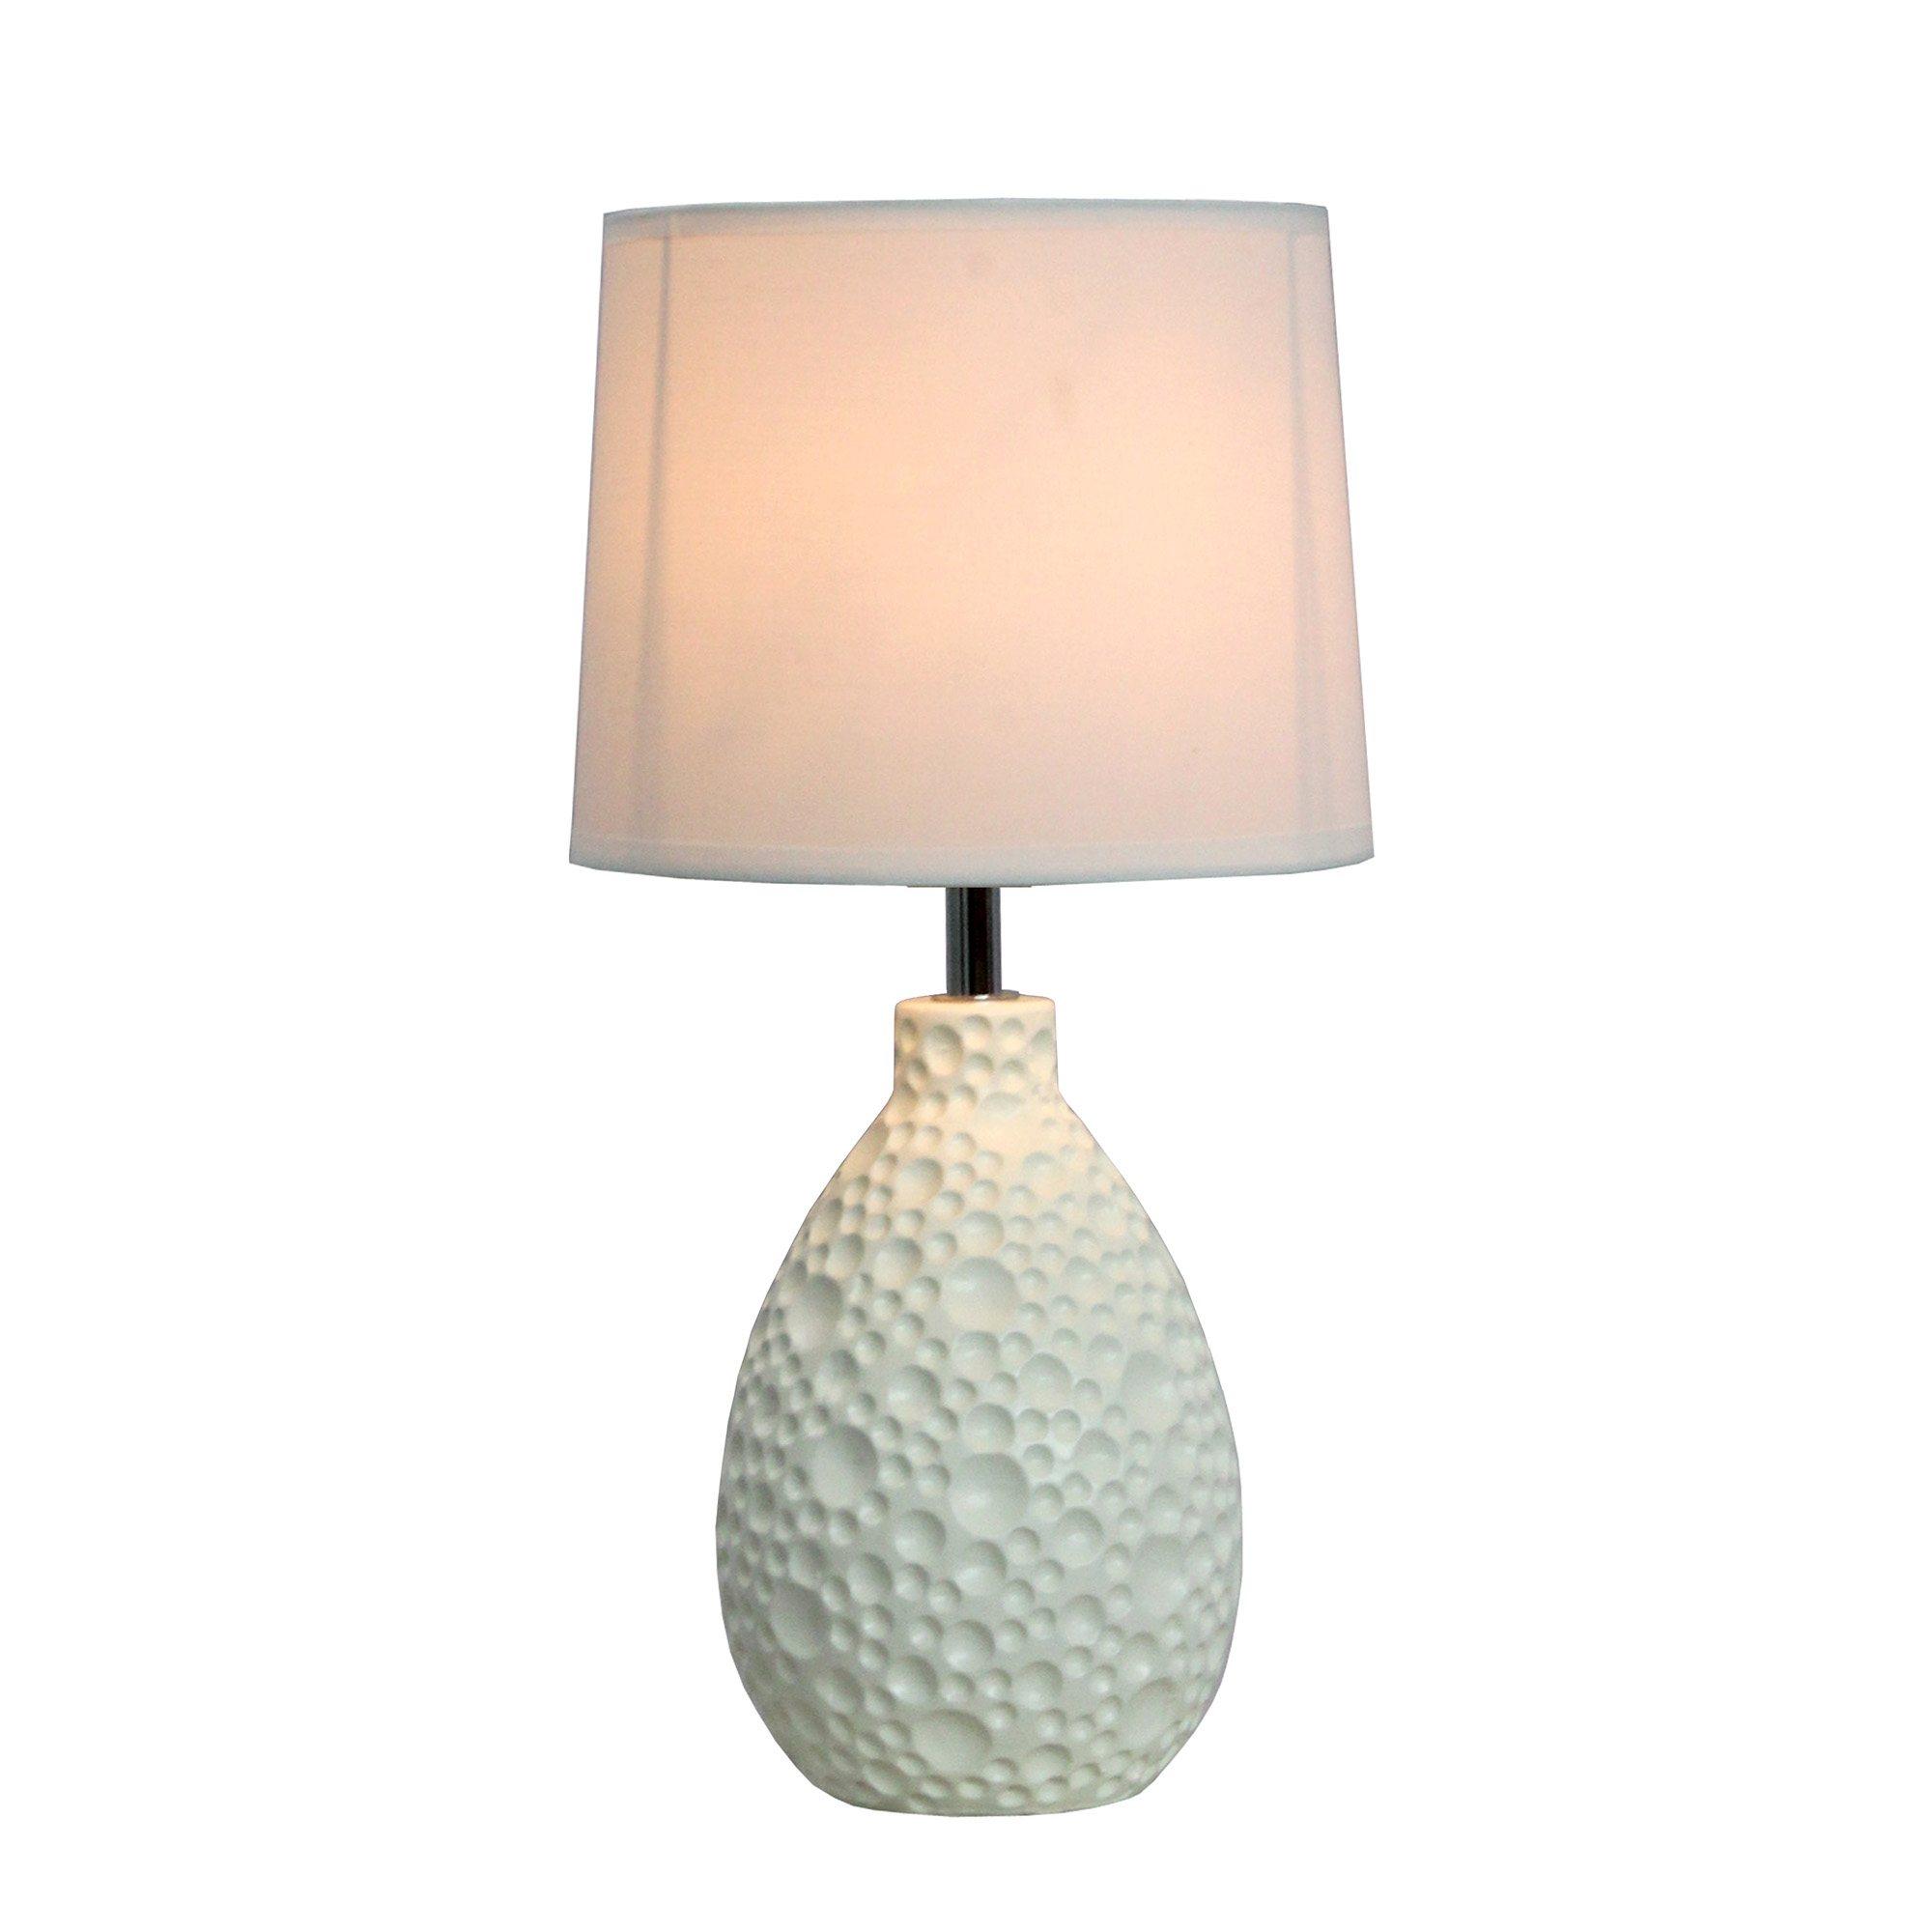 Simple designs texturized stucco ceramic oval table lamp walmart aloadofball Image collections